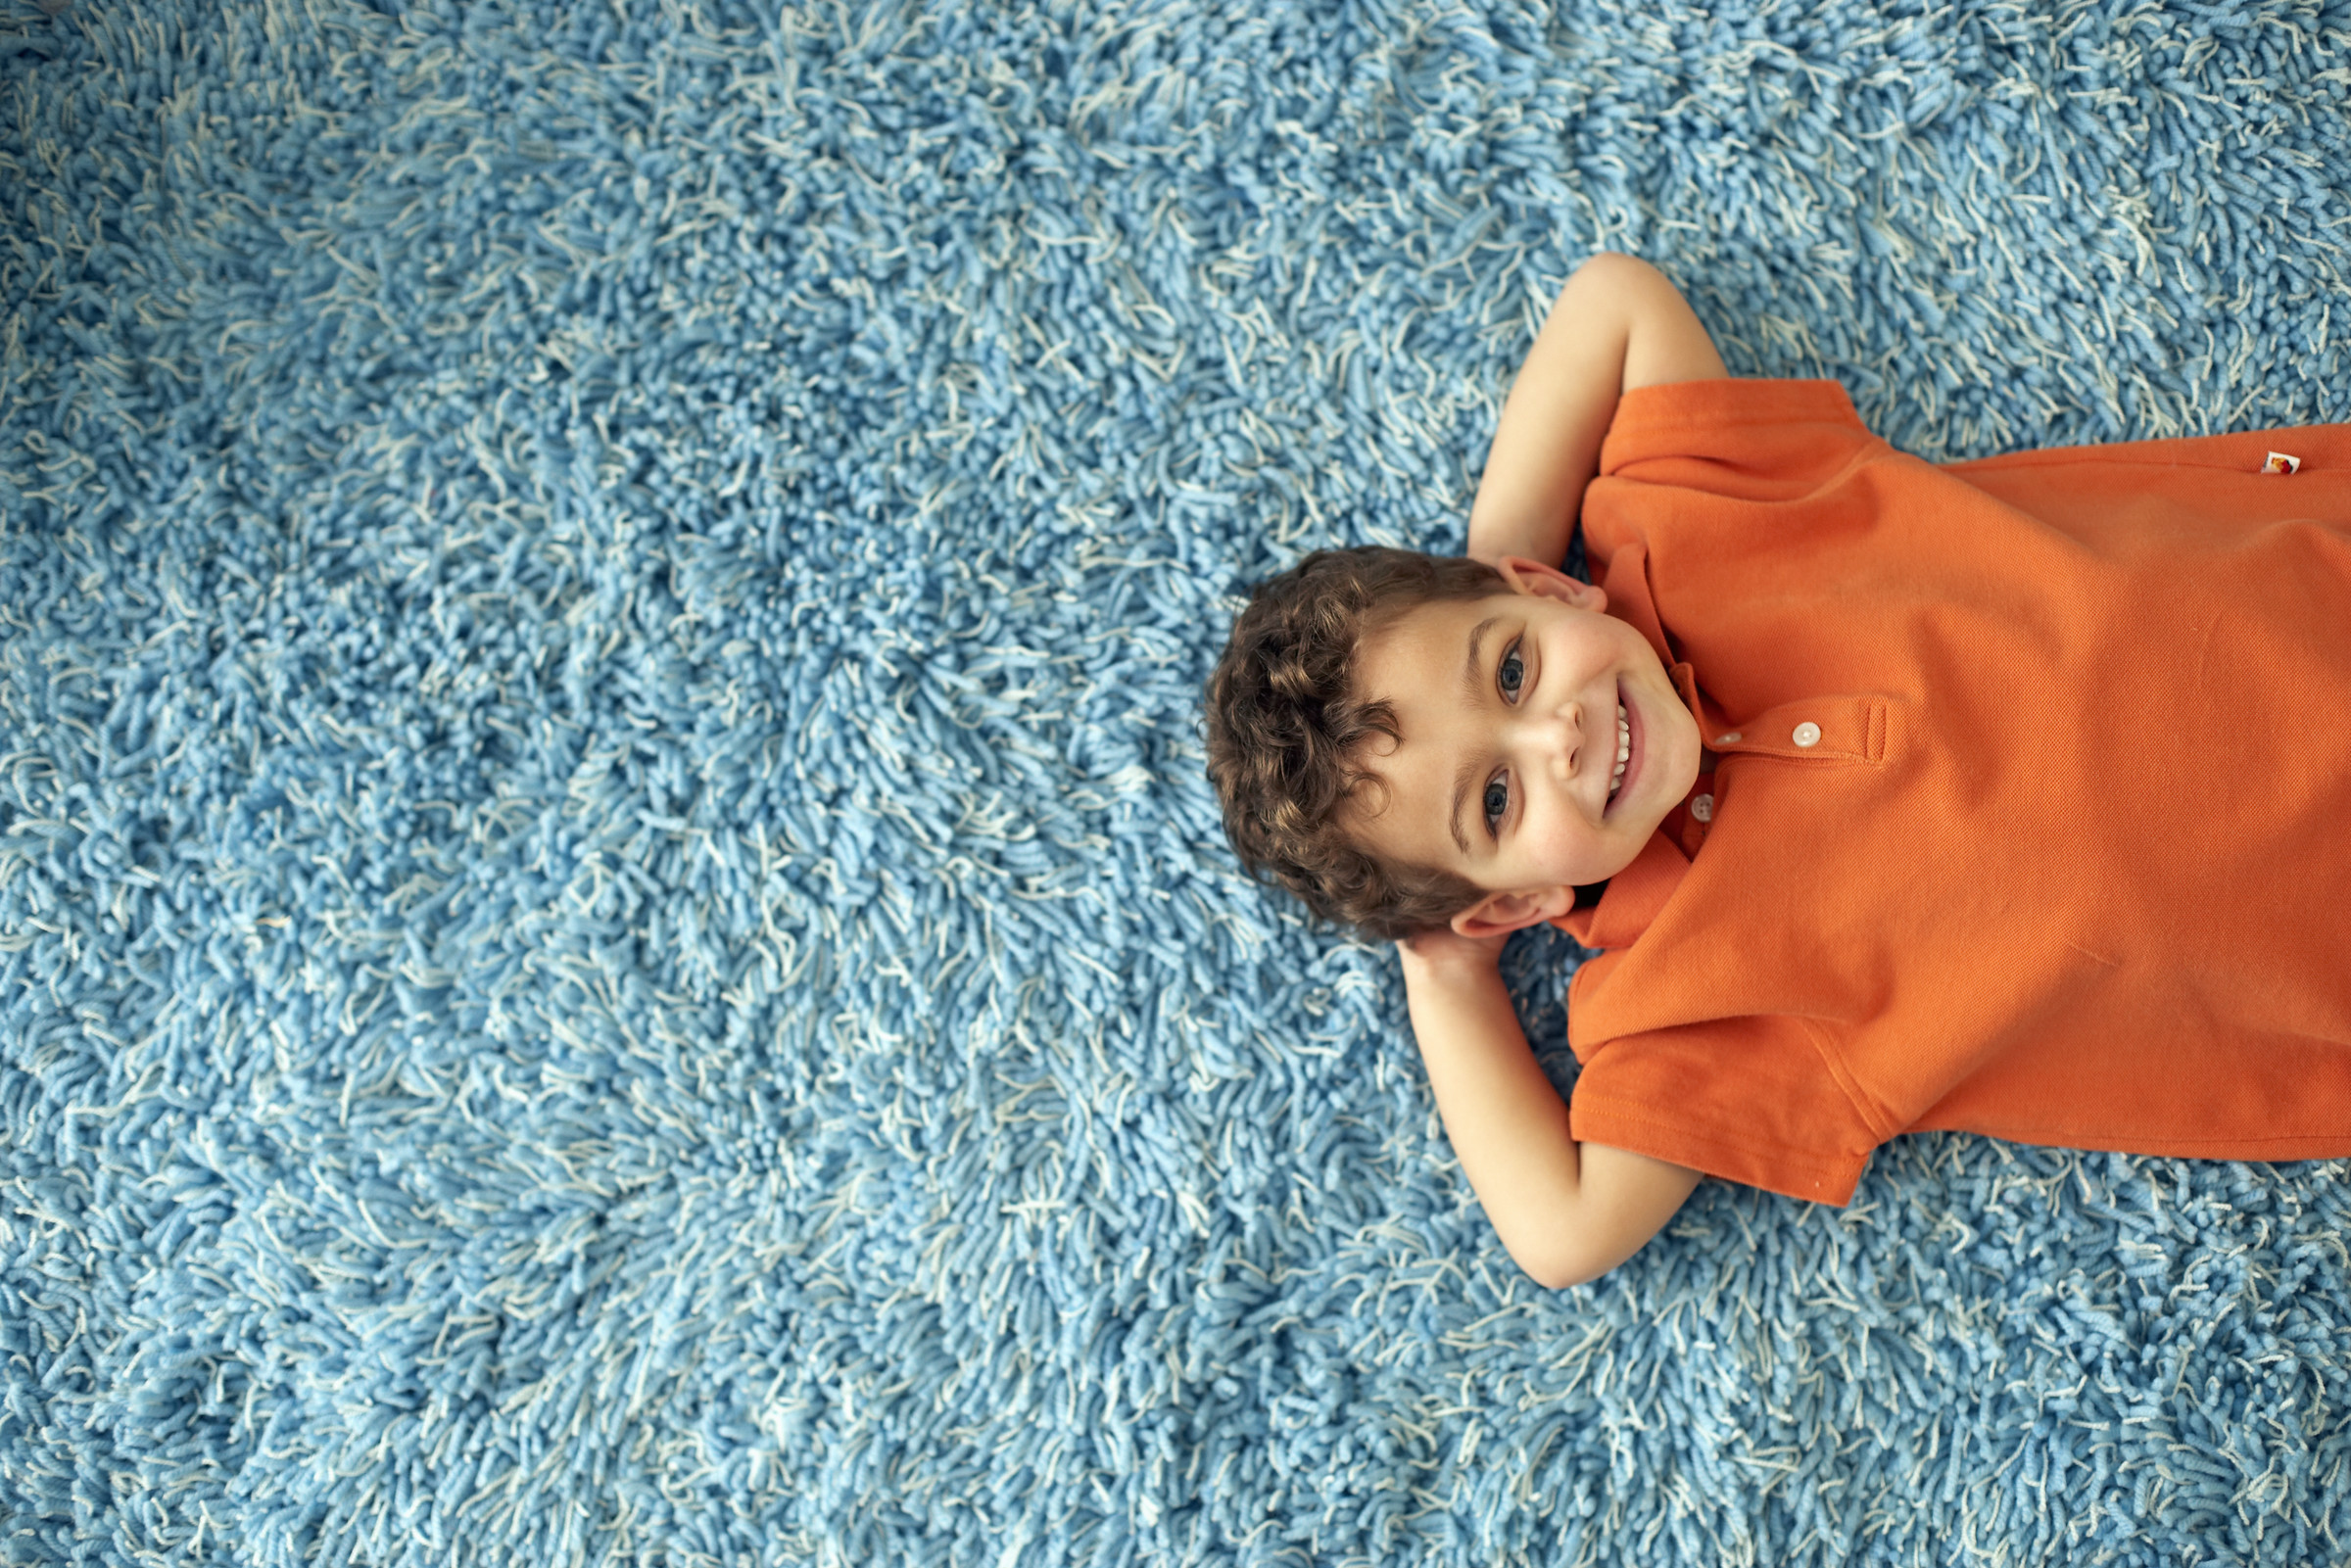 Carpet_and_child